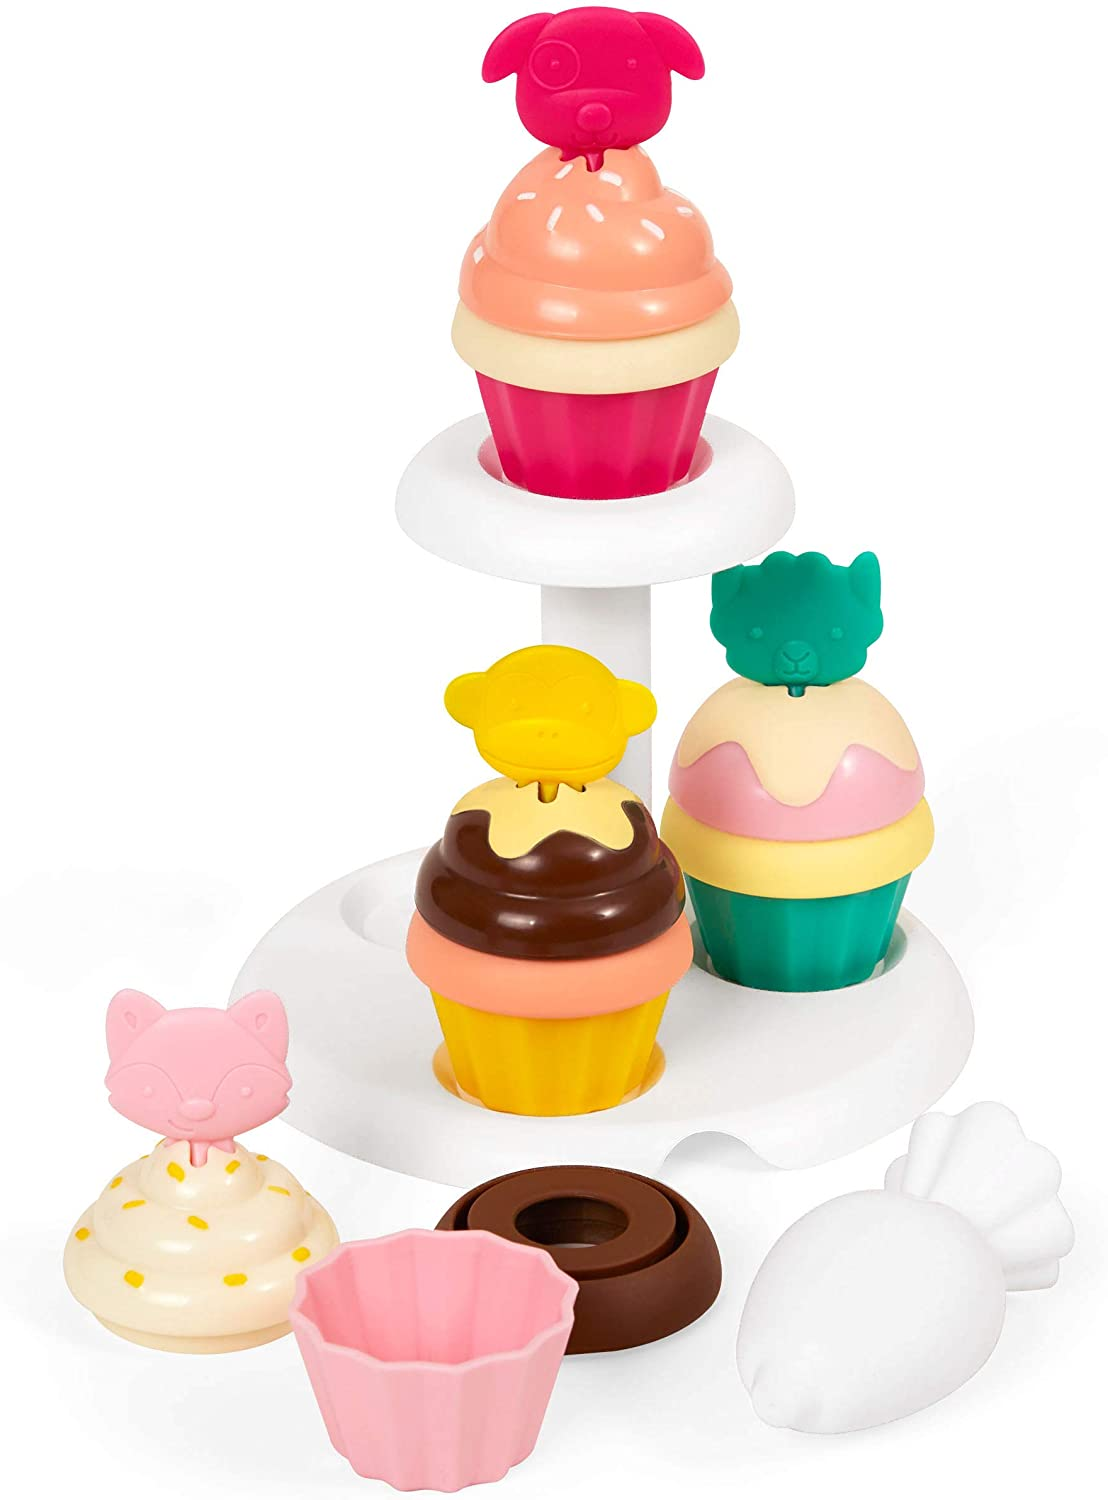 SKIP HOP ZOO SORT & STACK CUPCAKES TODDLER PRETEND PLAY DEVELOPMENT TOY